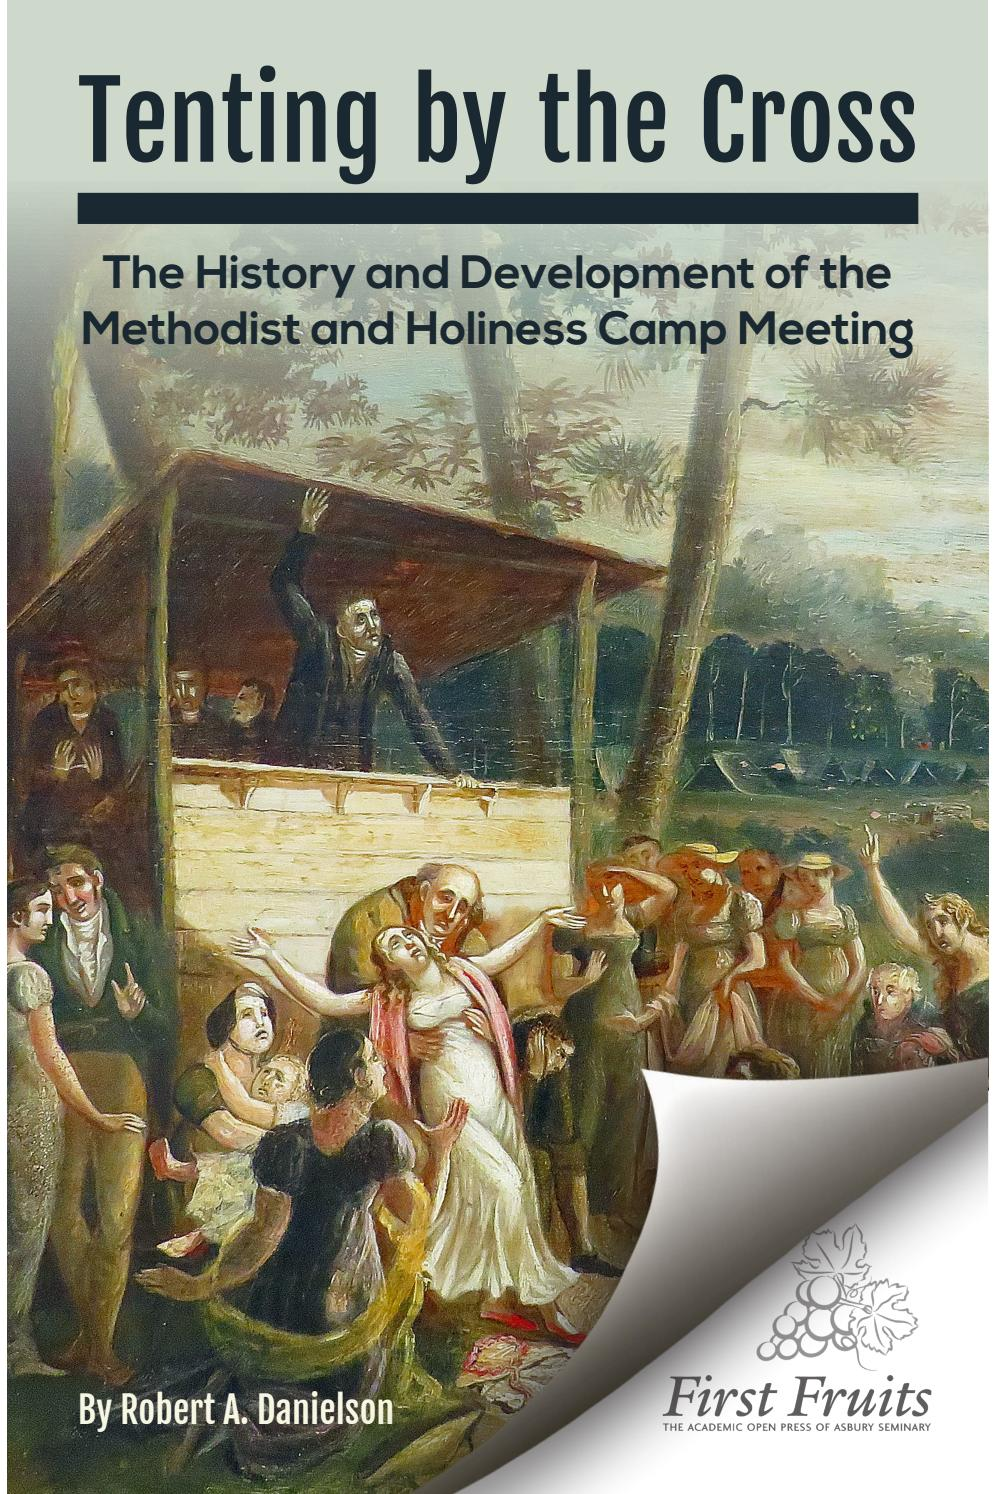 Tenting by the Cross: The History and Development of the